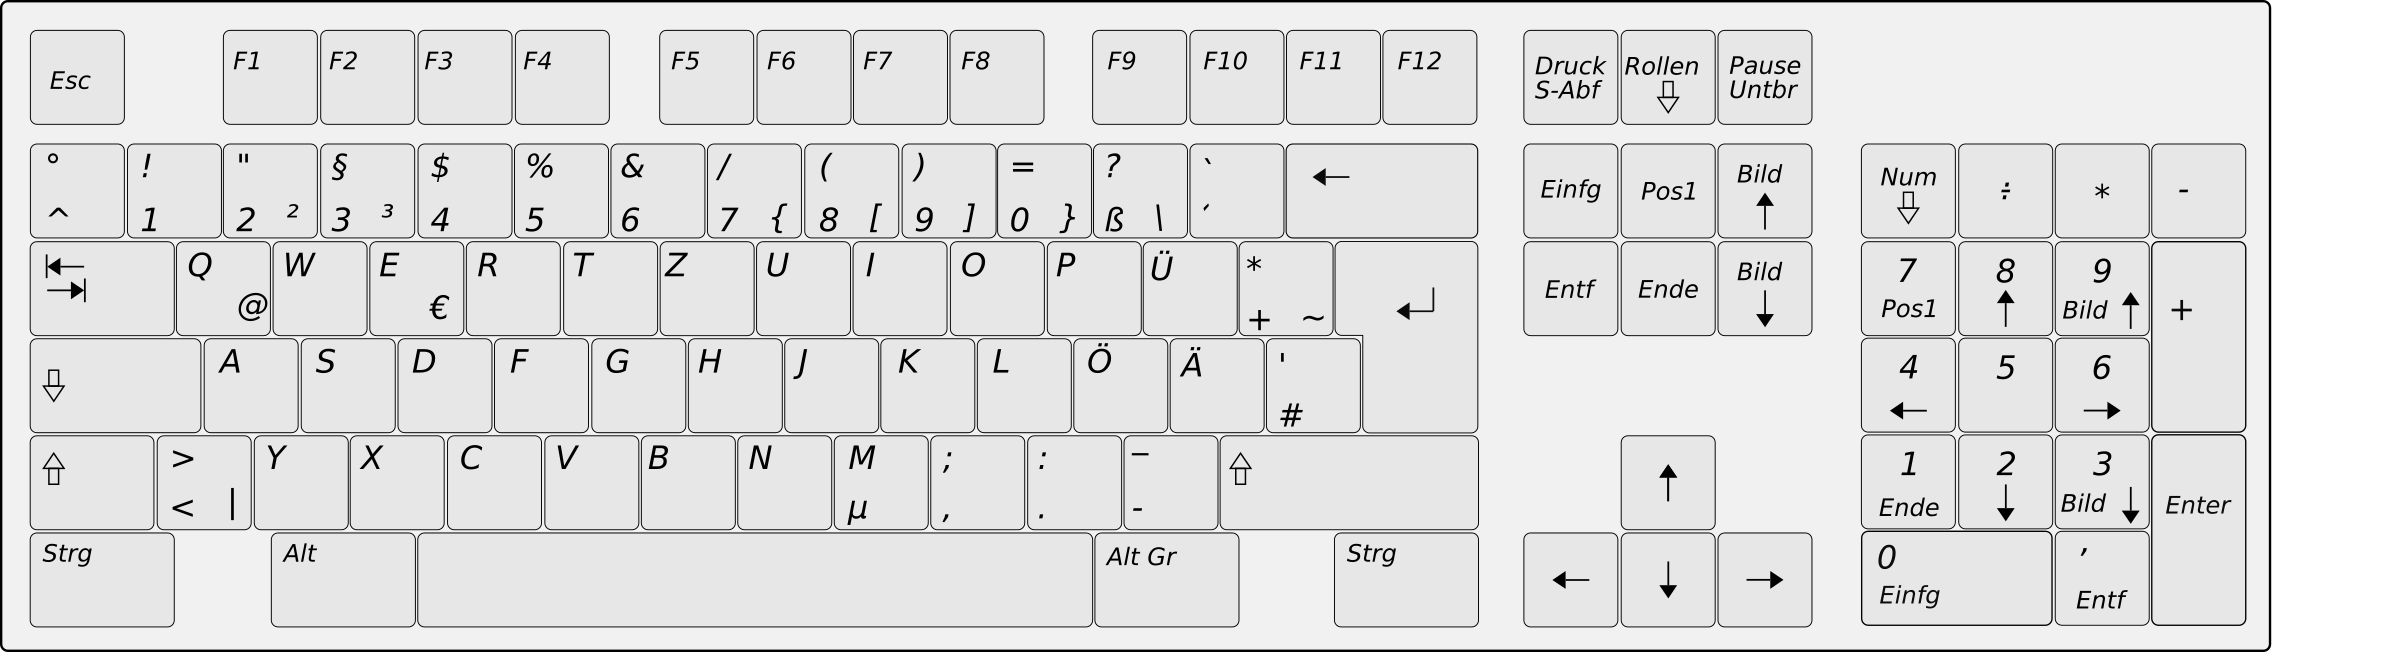 Keyboard layout png. German computer icons free